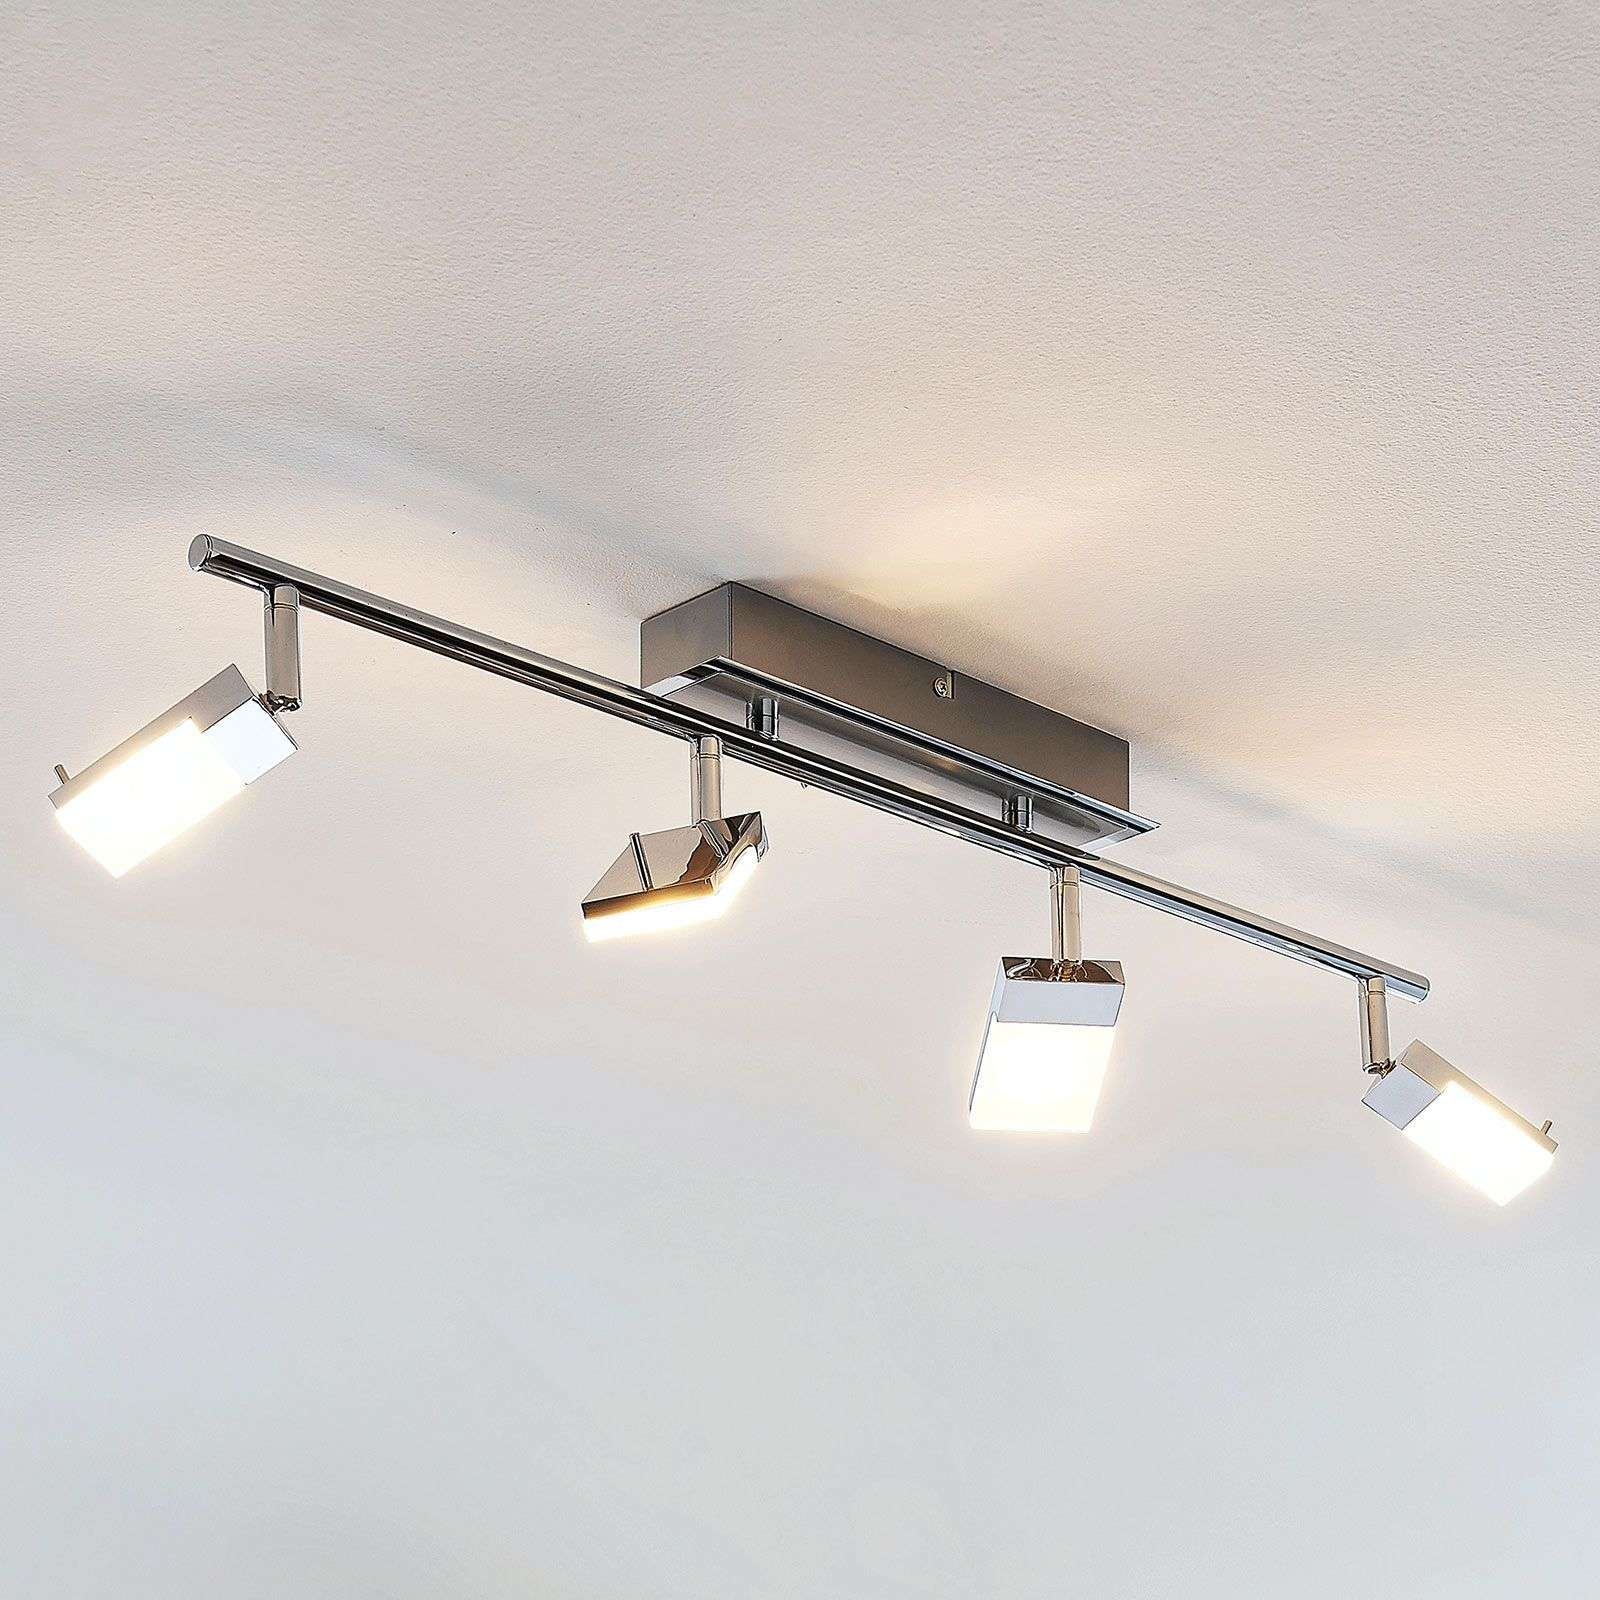 Faretto da soffitto LED Evelina a 4 luci